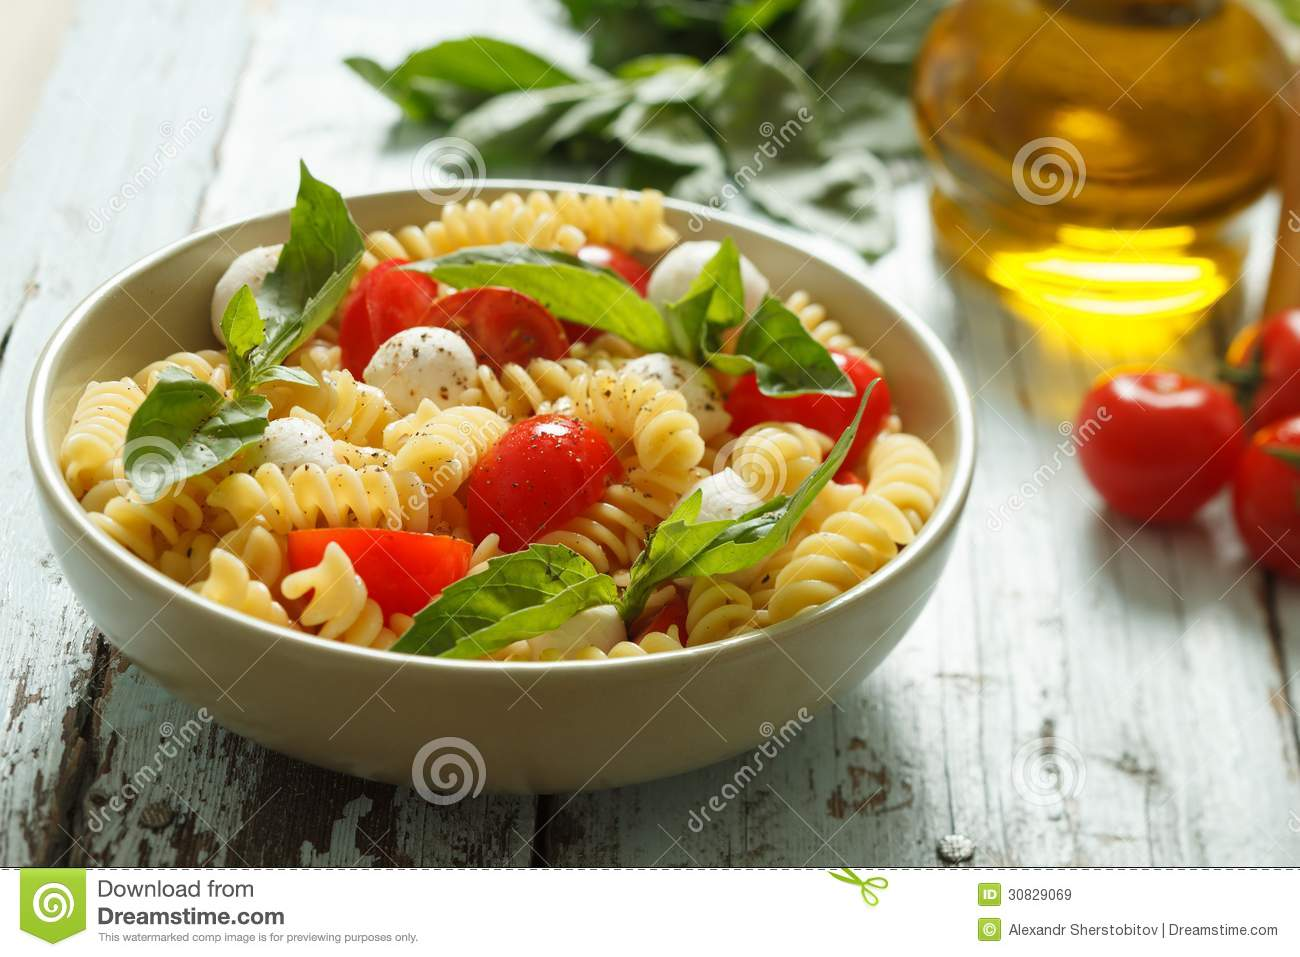 Pasta Salad With Cherry Tomatoes And Basil Leaves Royalty ...